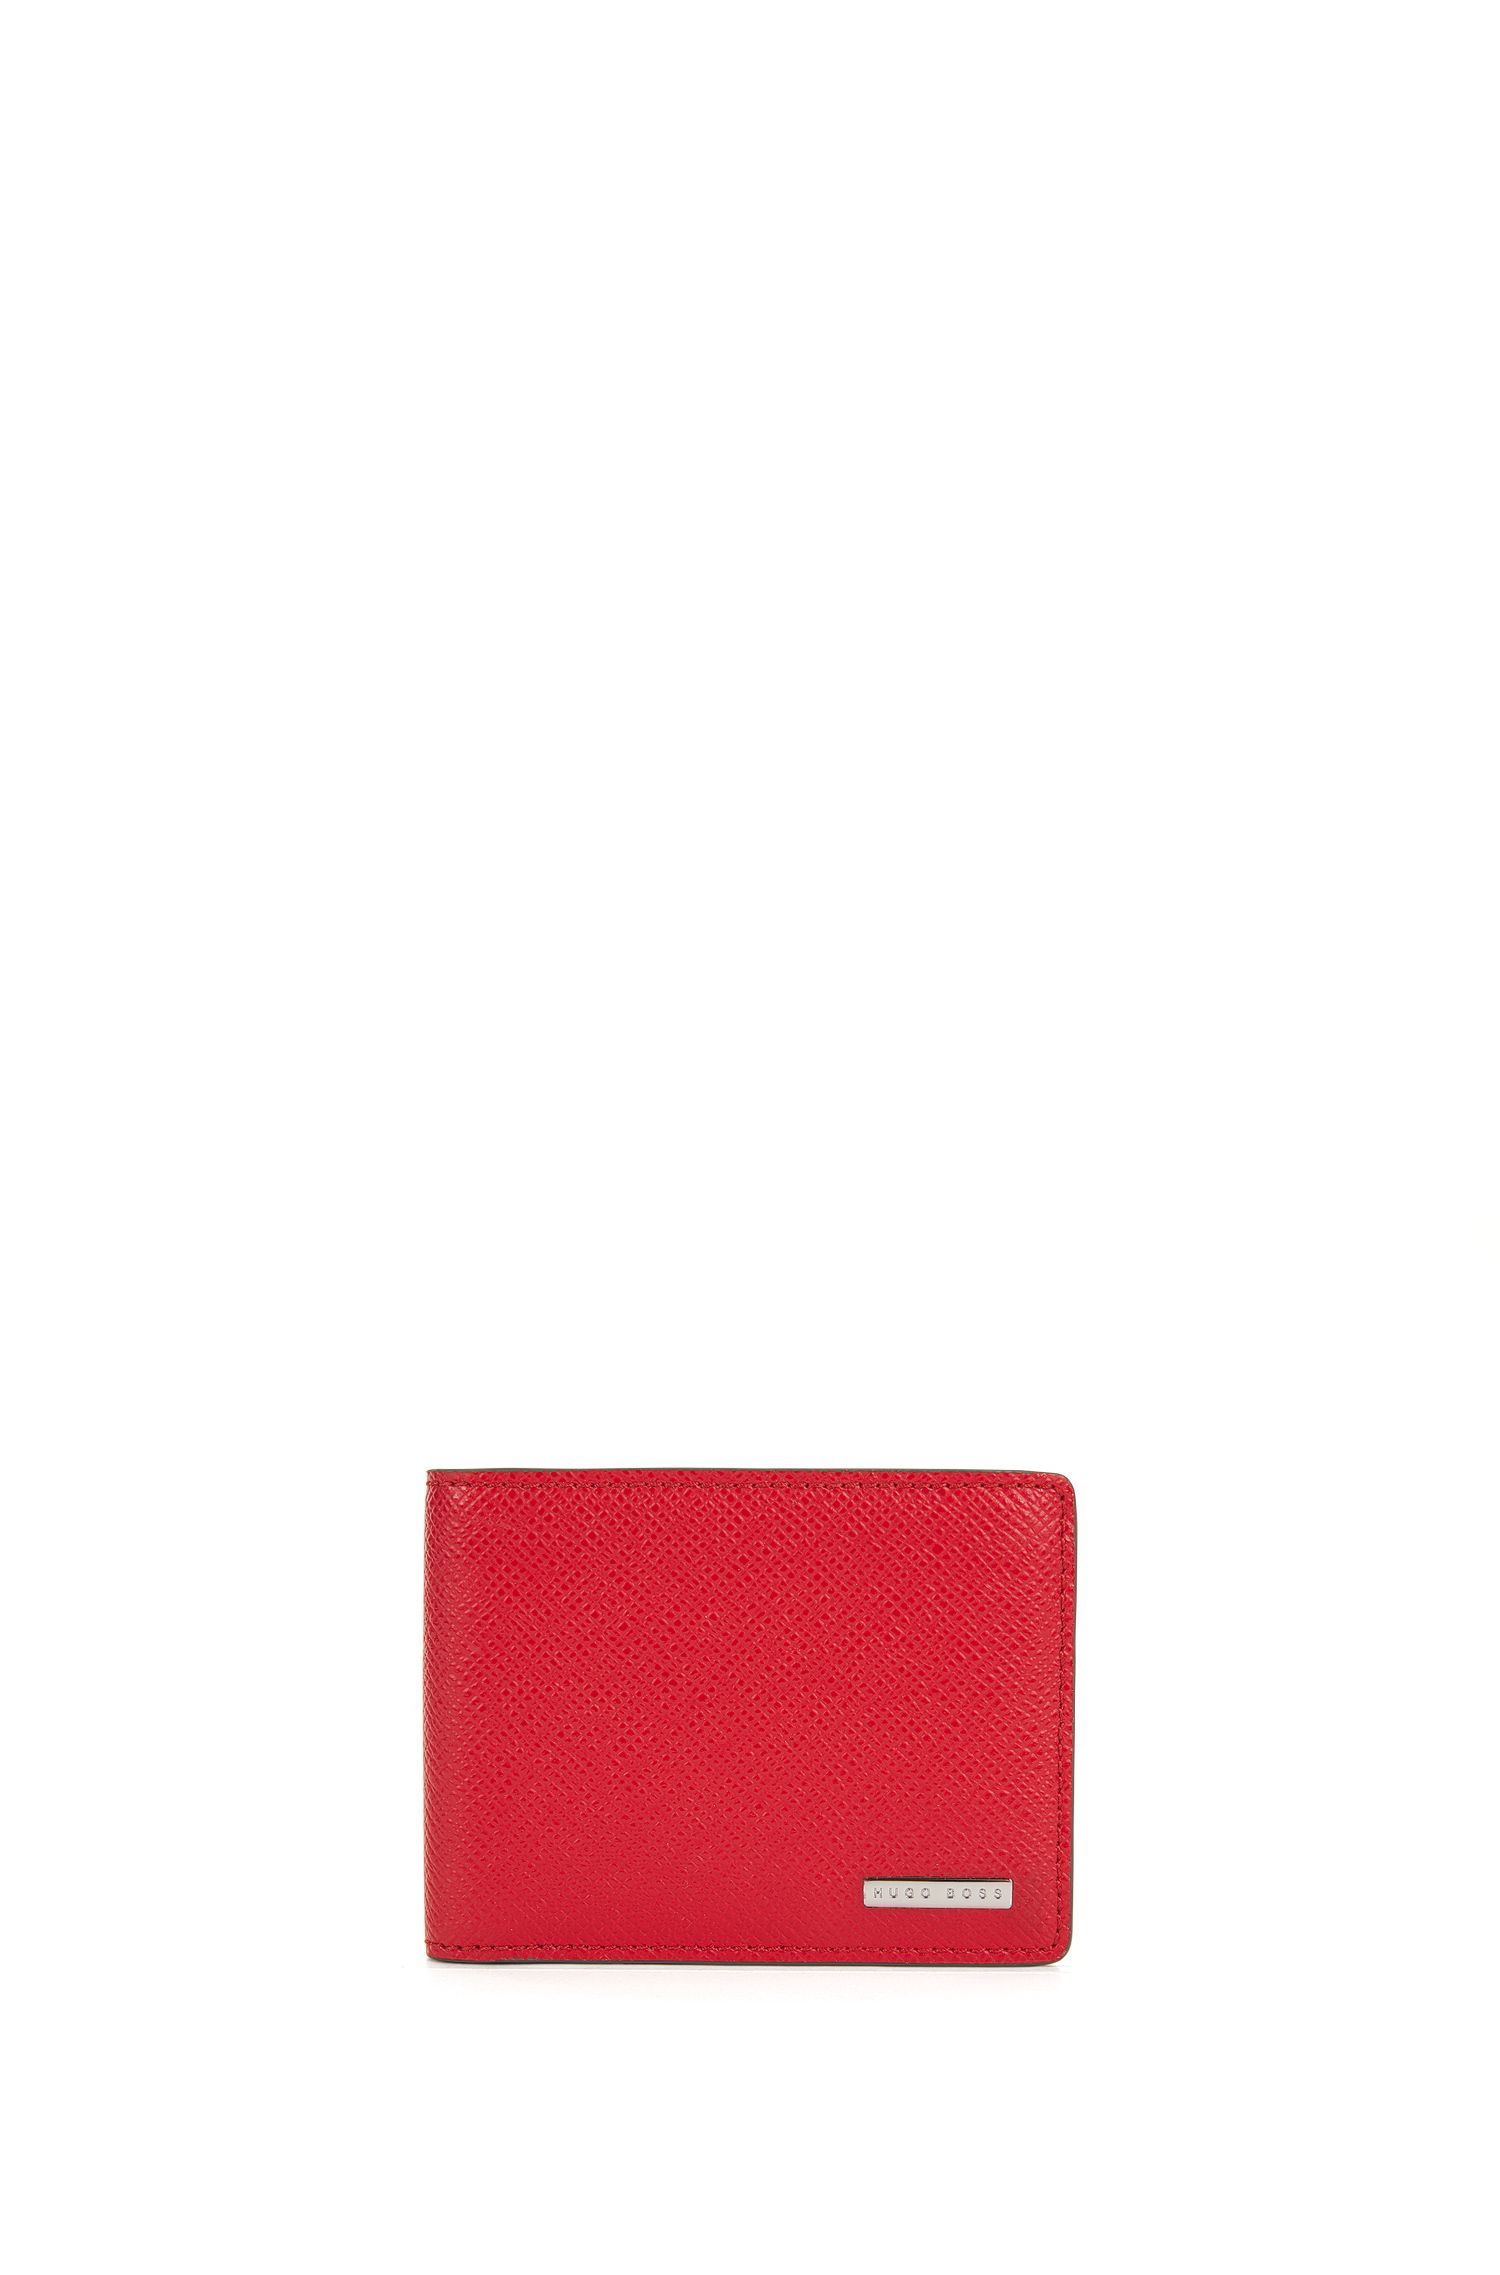 Signature Collection wallet in palmellato leather